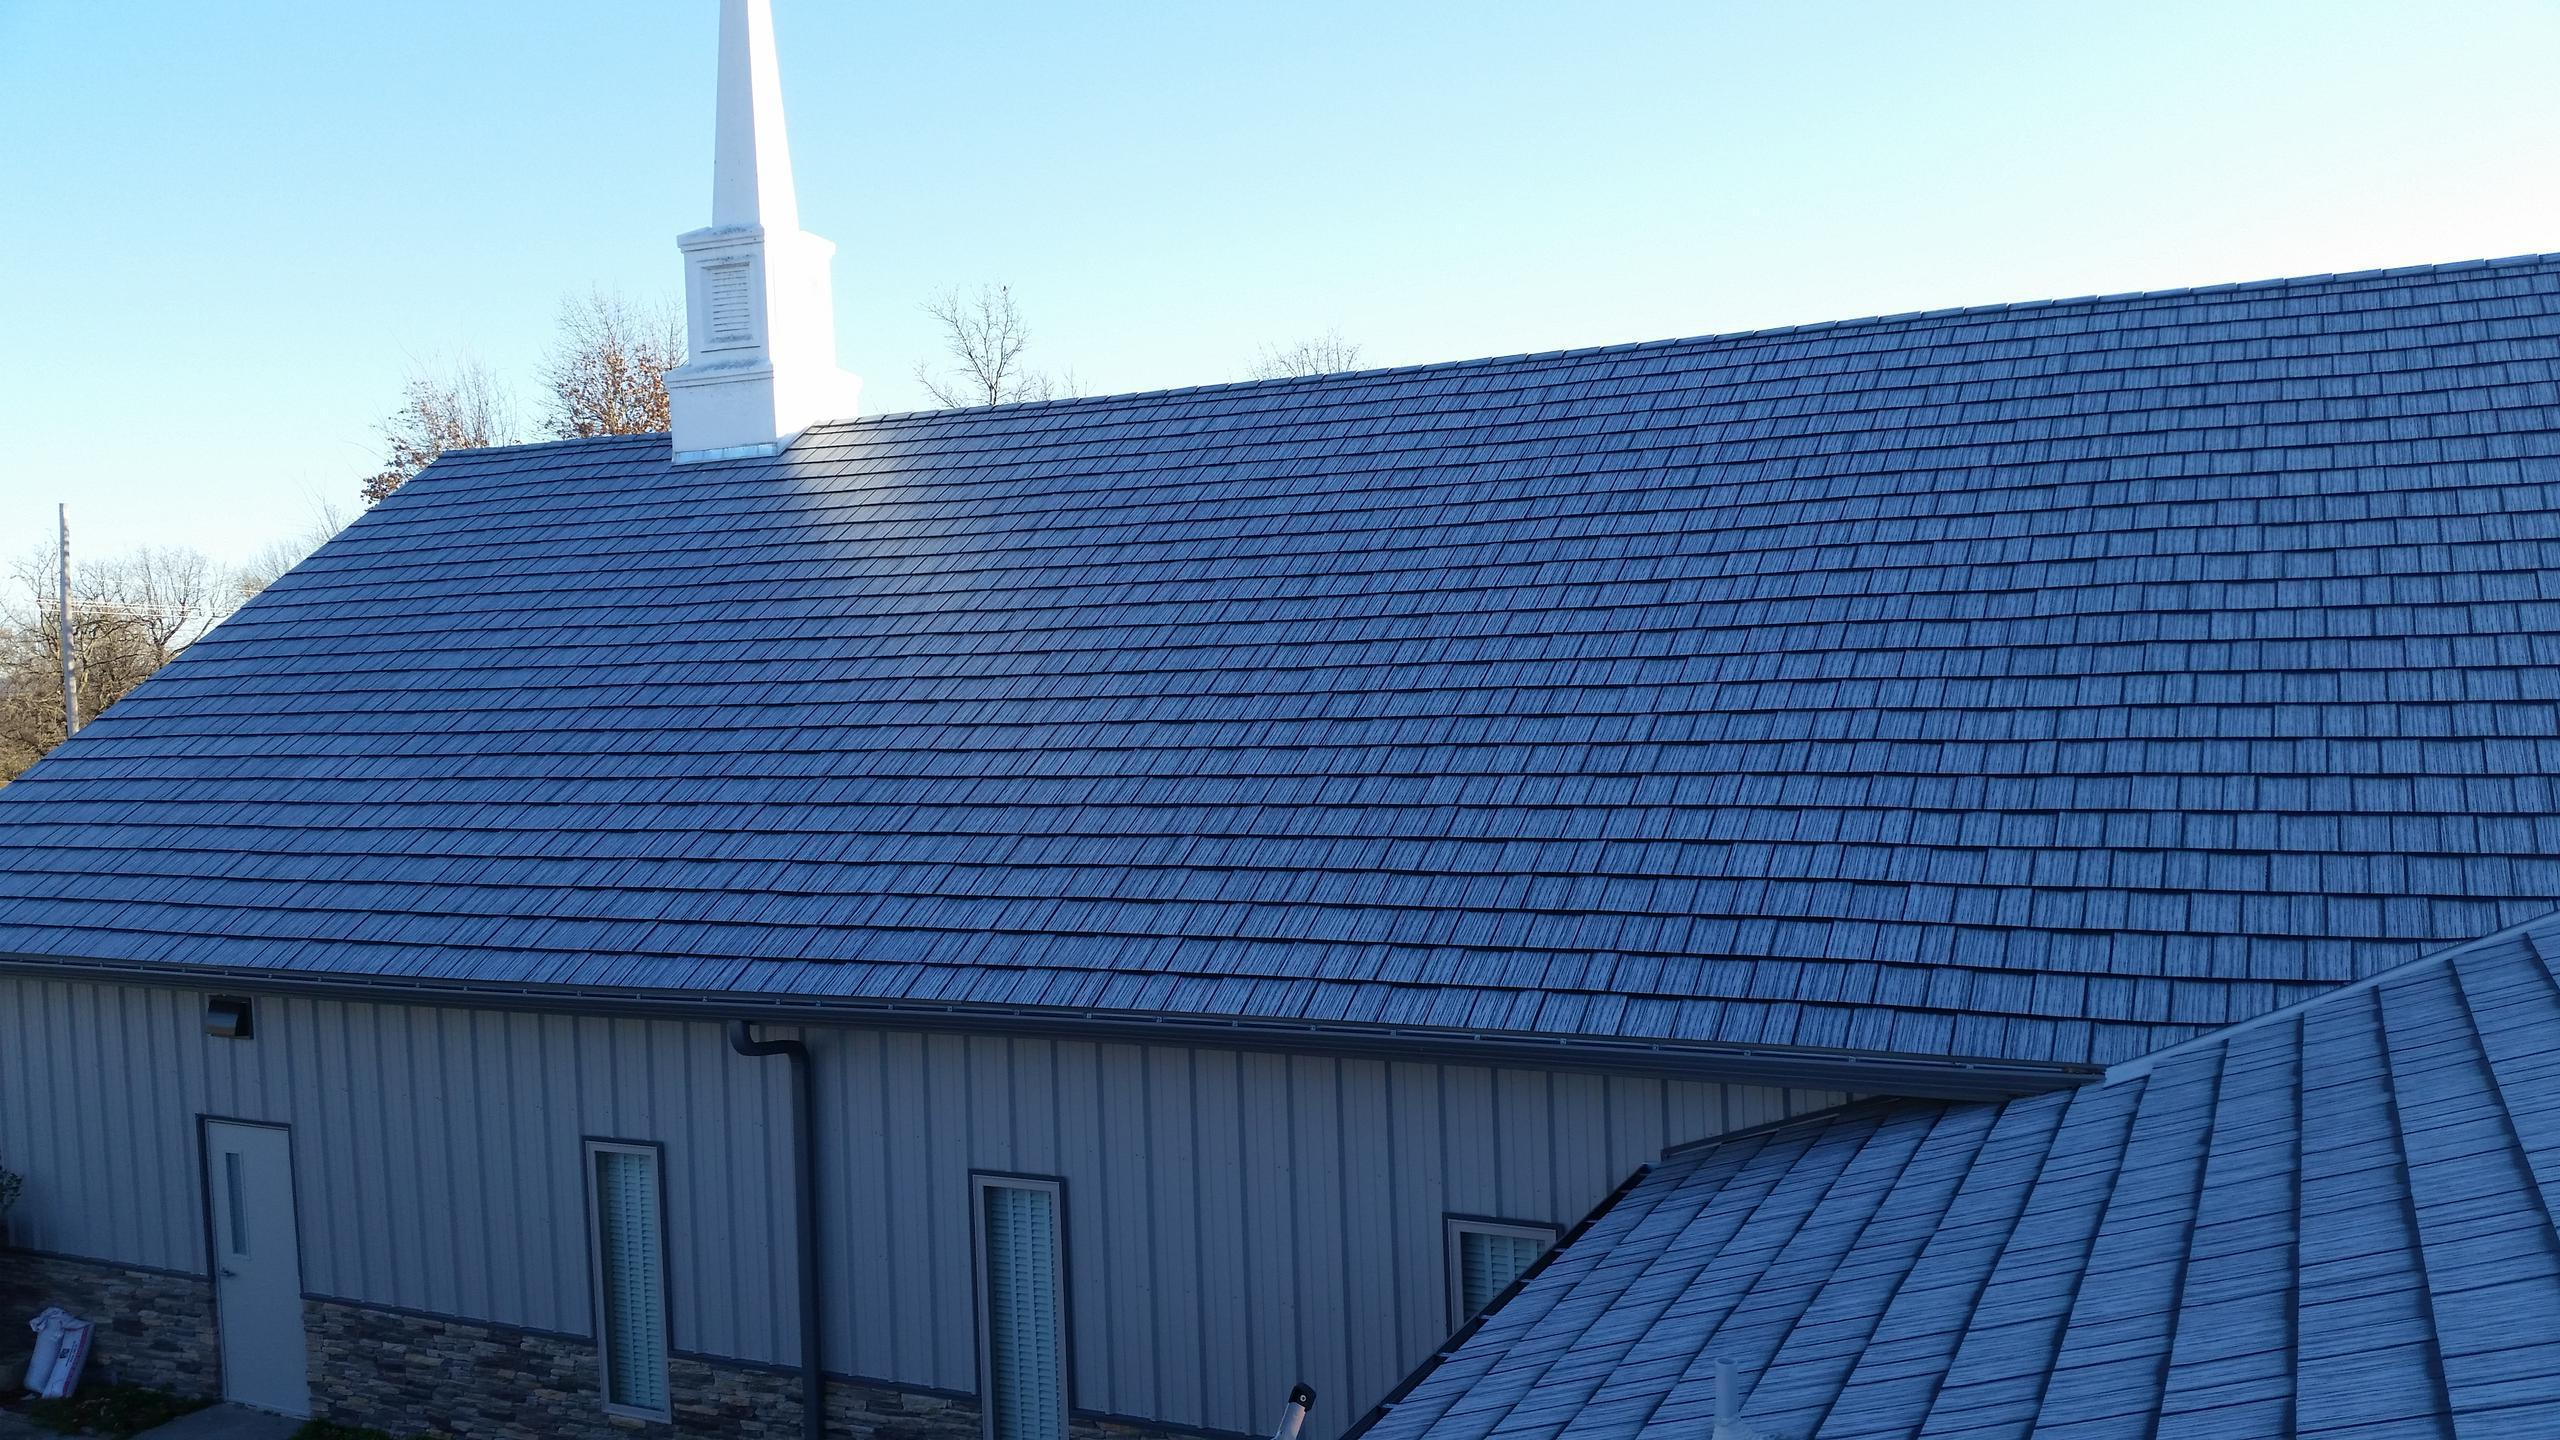 Generations HD Shake Charcoal Gray Roofing was selected for this church as a result of its unmatched warranty and the rustic dimension and naturalism to traditional hand-split cedar shakes.